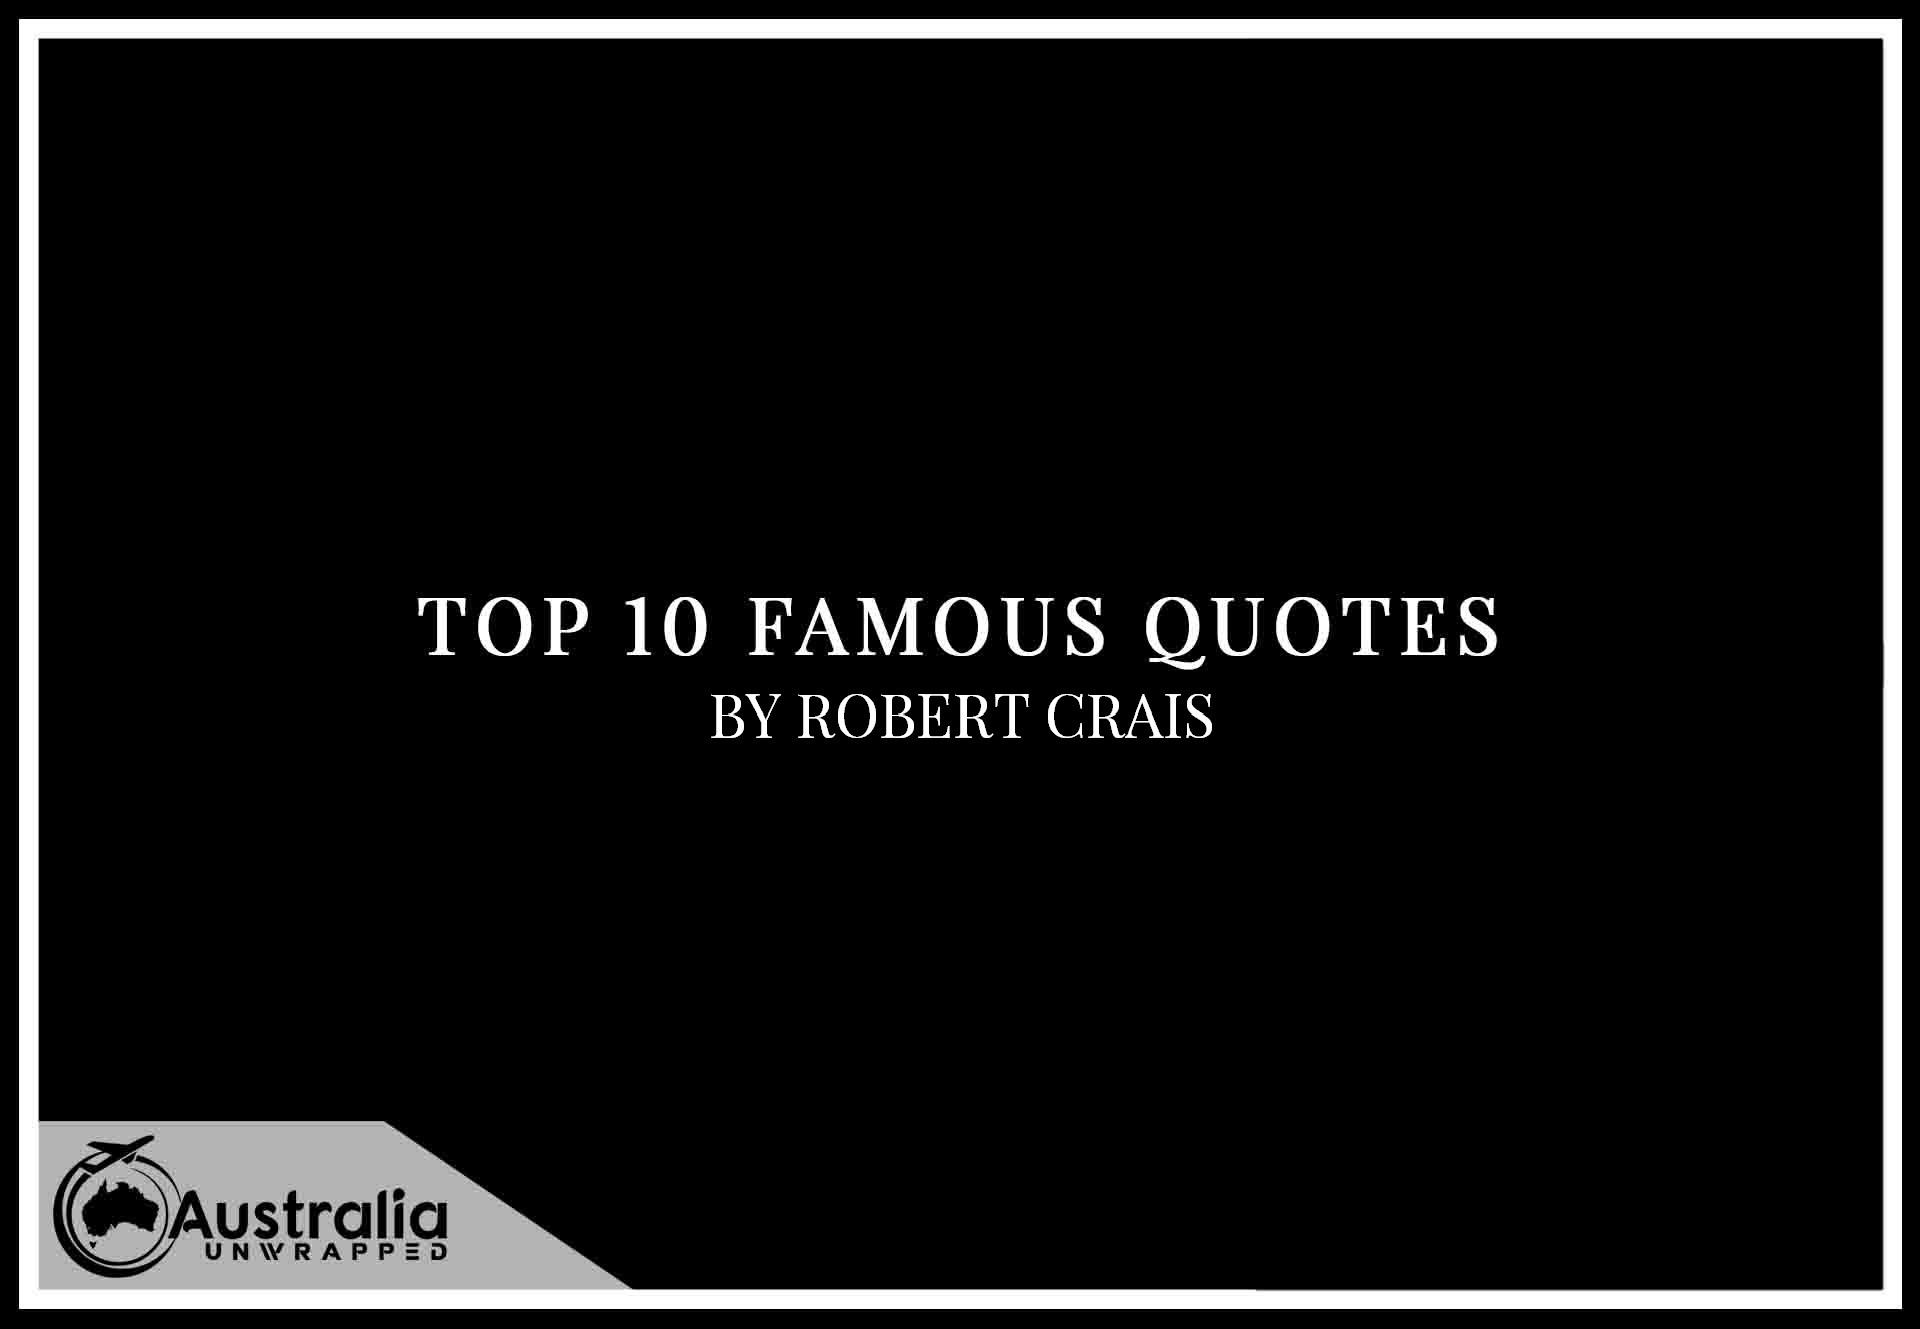 Top 10 Famous Quotes by Author Robert Crais